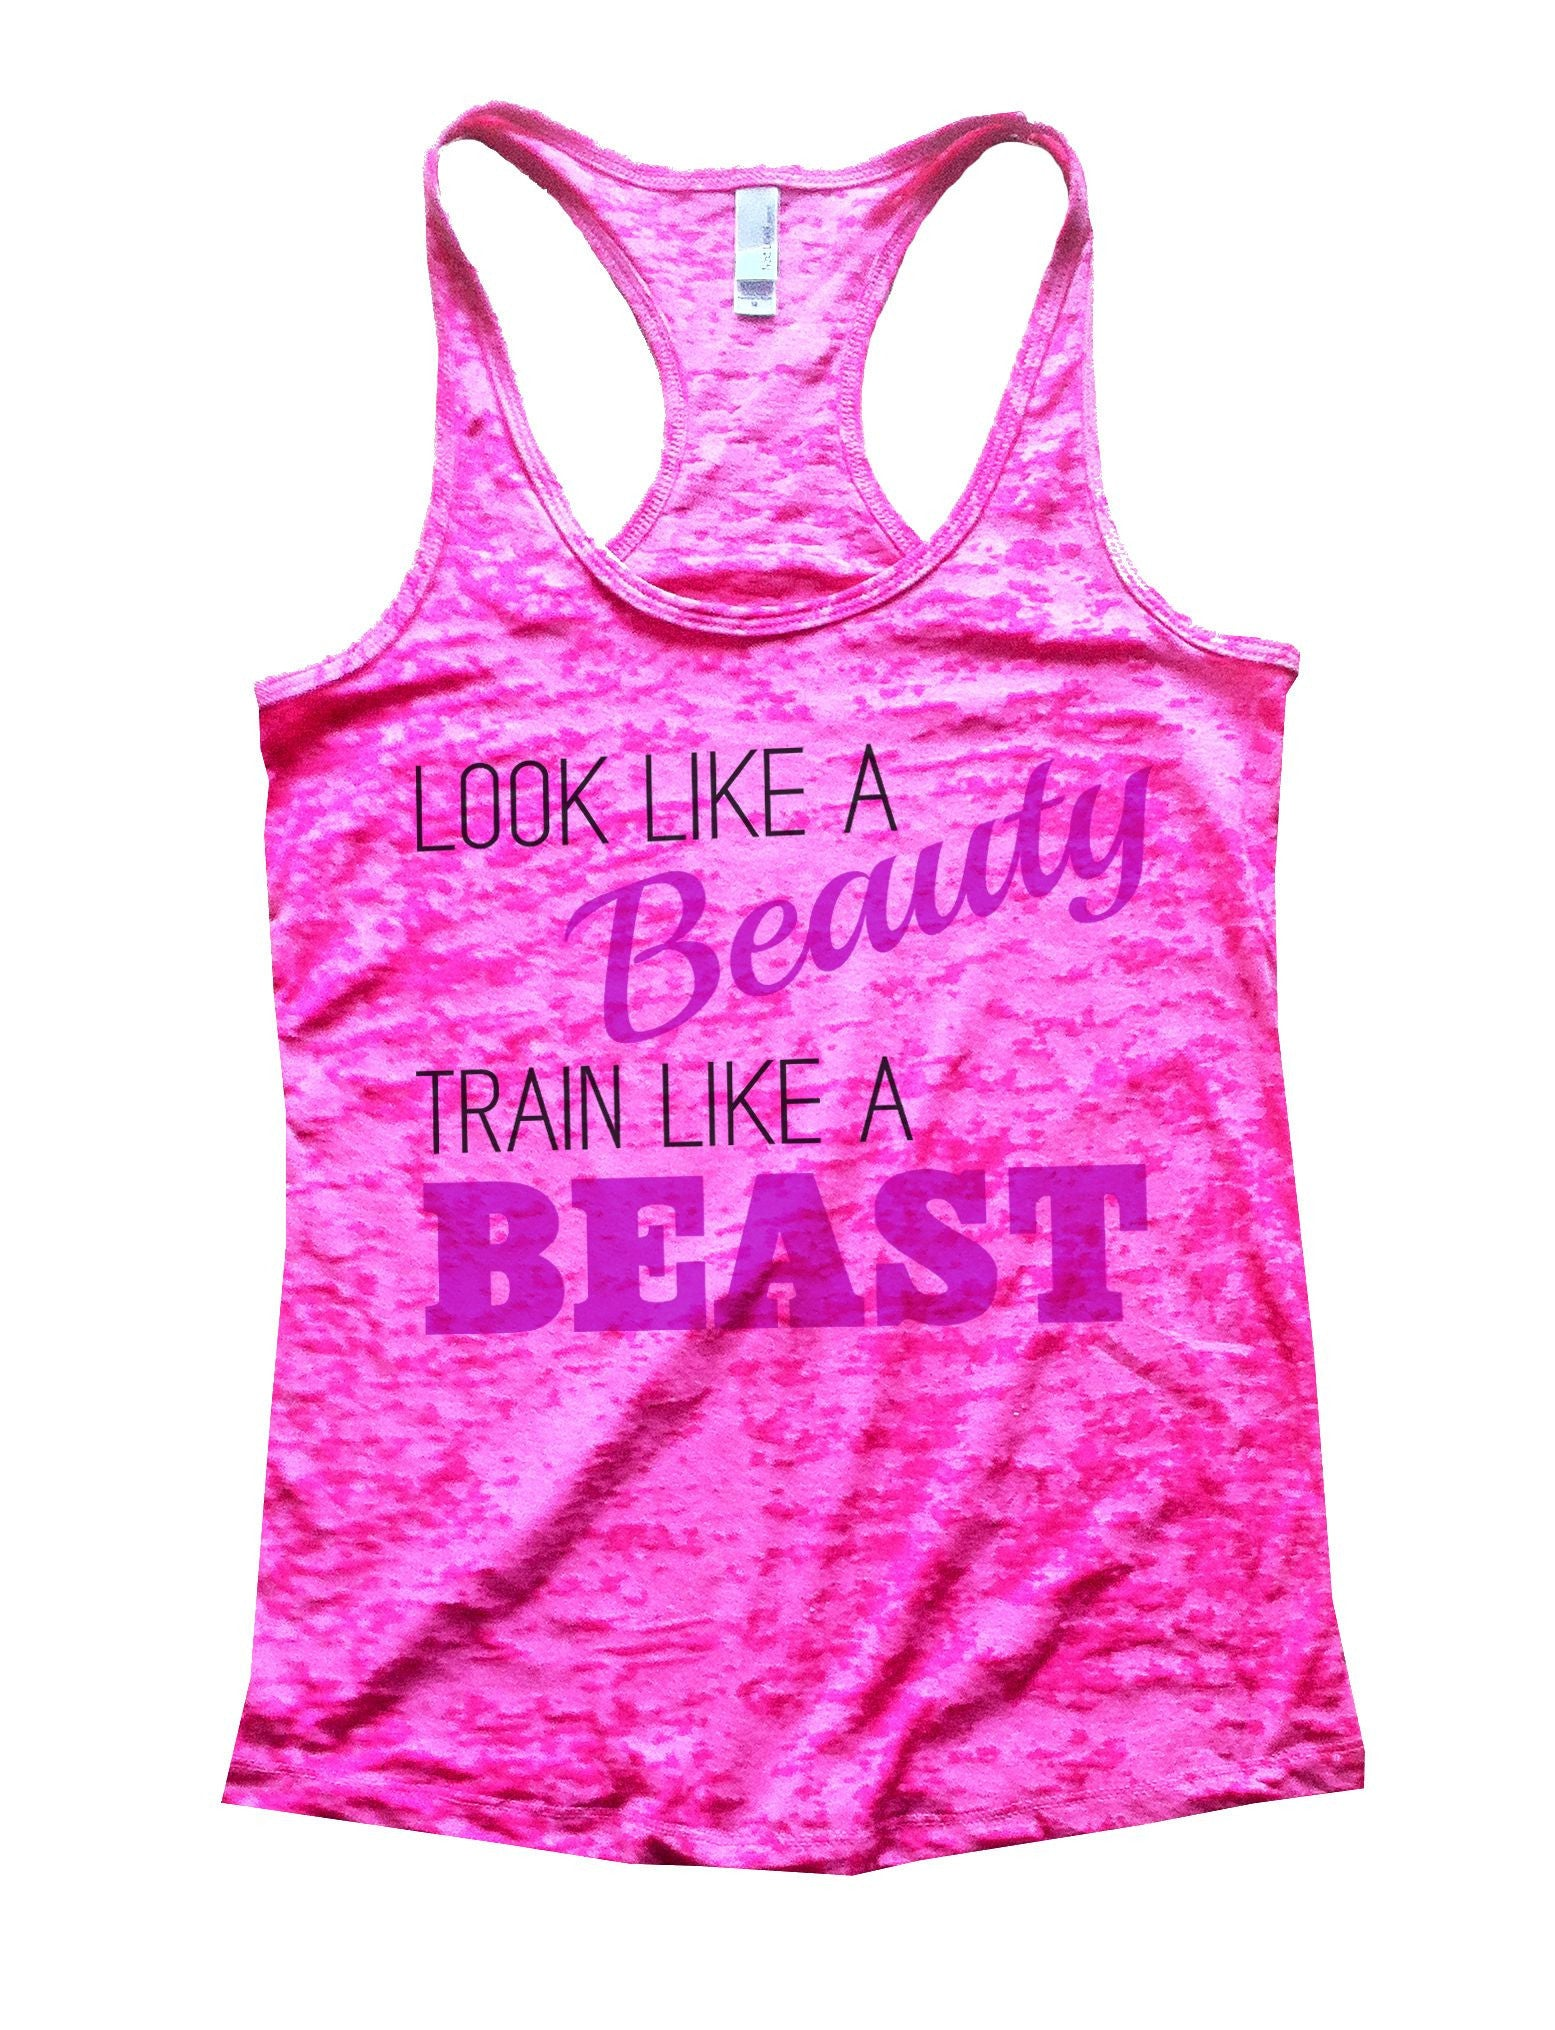 Look Like A Beauty Train Like A Beast Burnout Tank Top By BurnoutTankTops.com - 751 - Funny Shirts Tank Tops Burnouts and Triblends  - 3